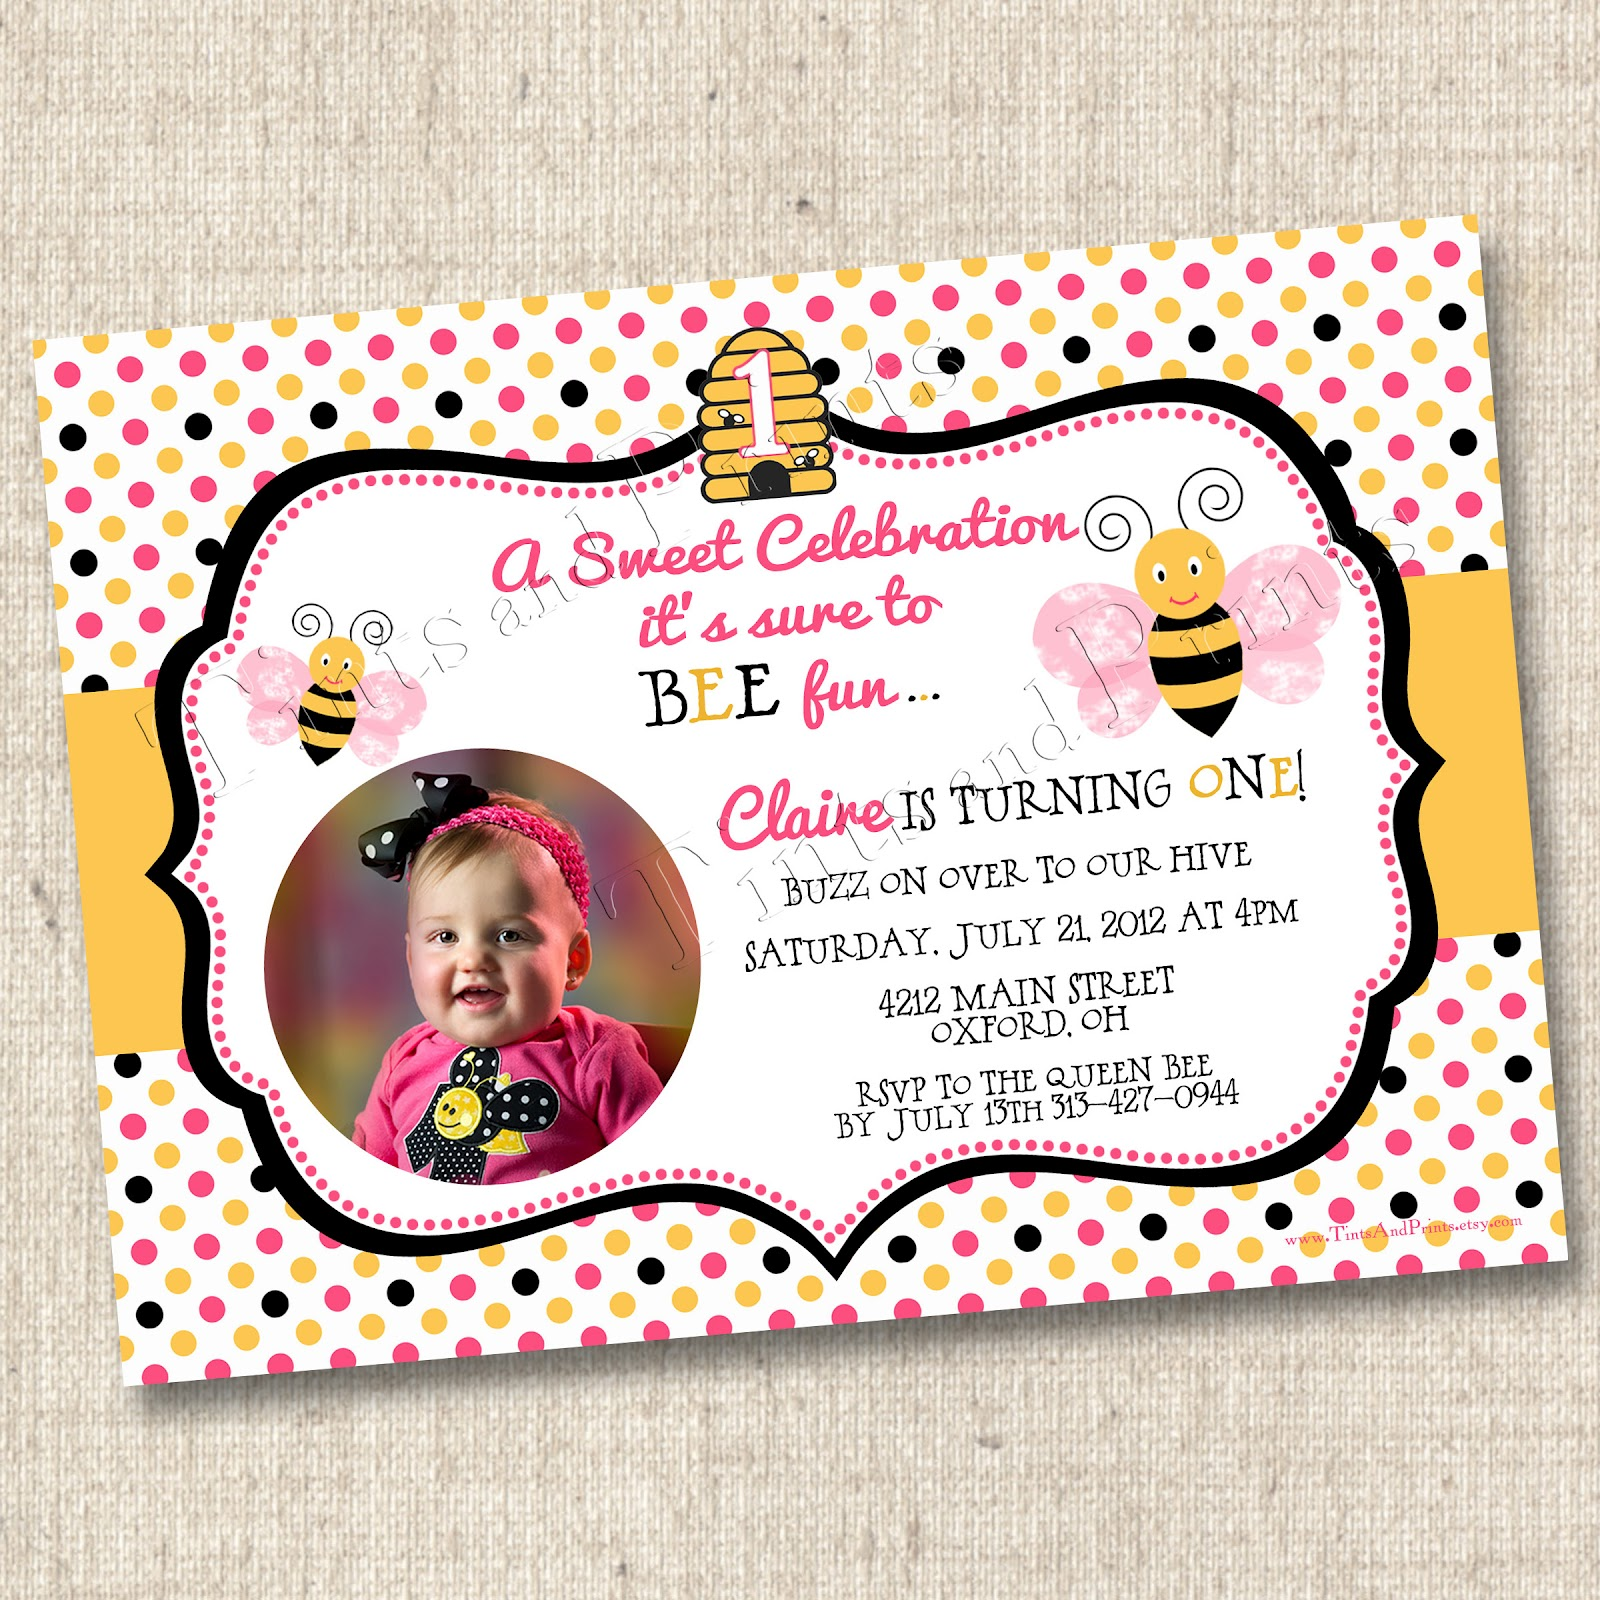 Custom Birthday Party Invitations gangcraftnet